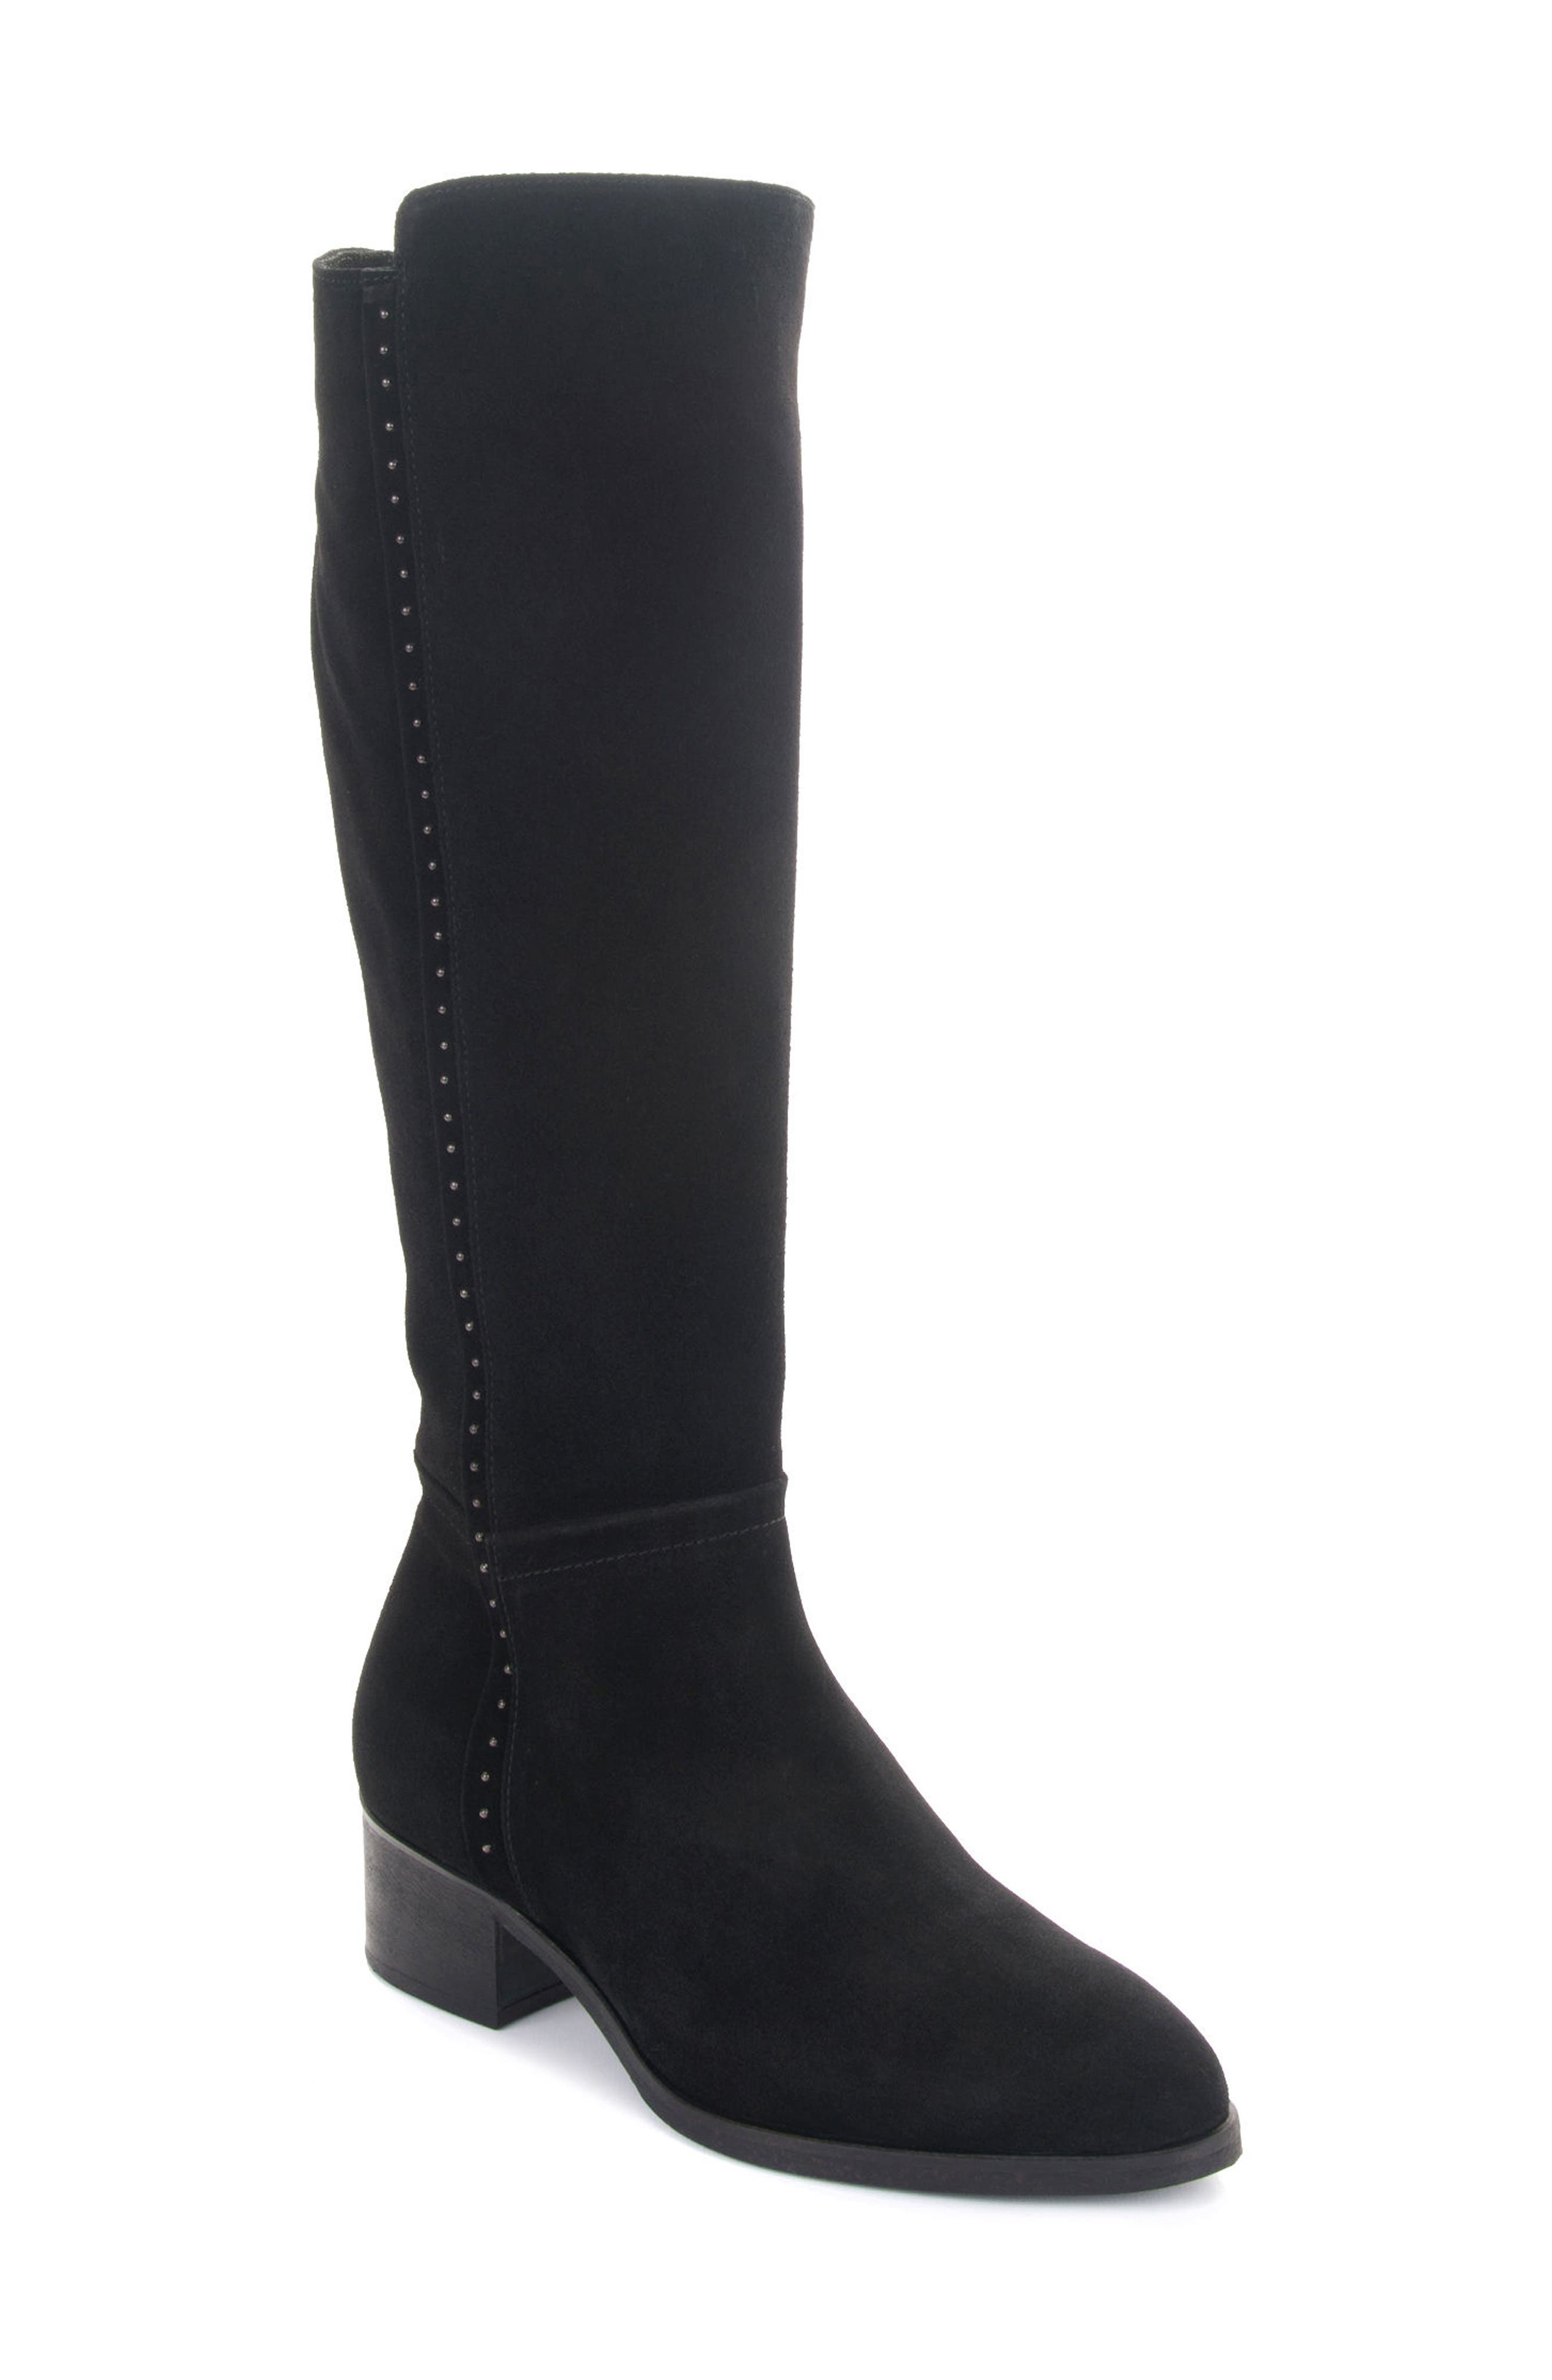 Fiamma Water Resistant Knee High Boot,                             Main thumbnail 1, color,                             010